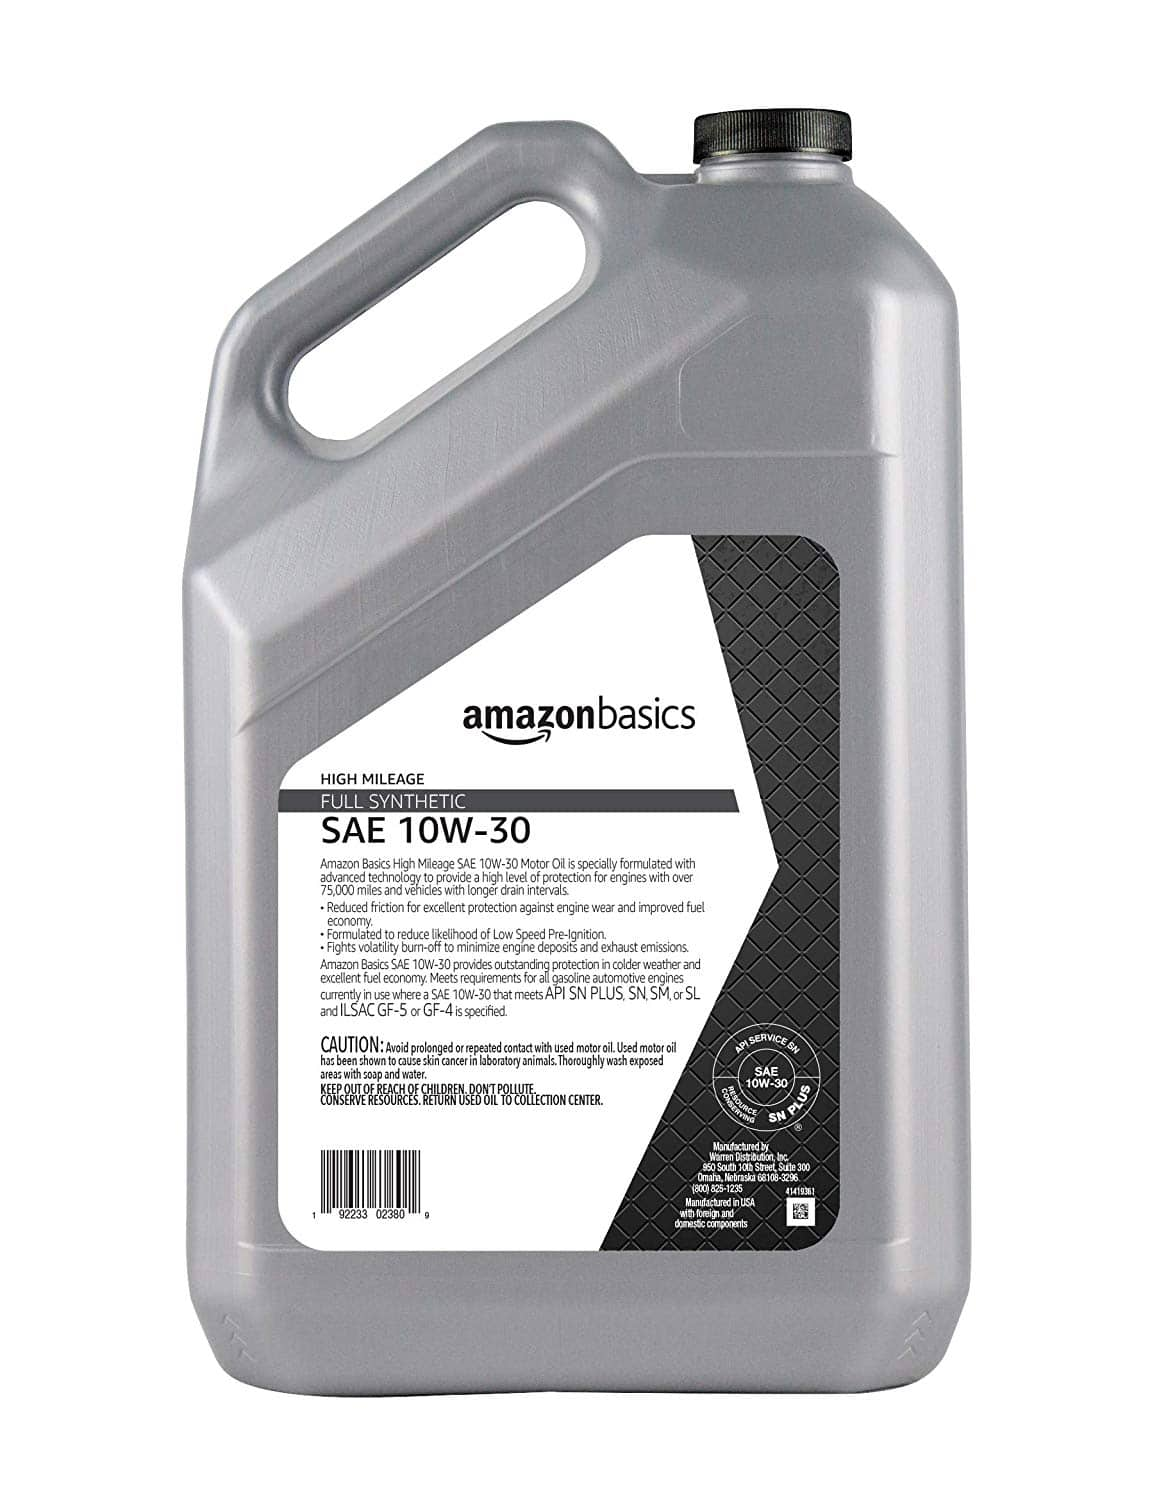 5 Quart AmazonBasics High Mileage Full Synthetic Engine Oil, 10W-30 / 5W-20 / 5W-30, $16.14